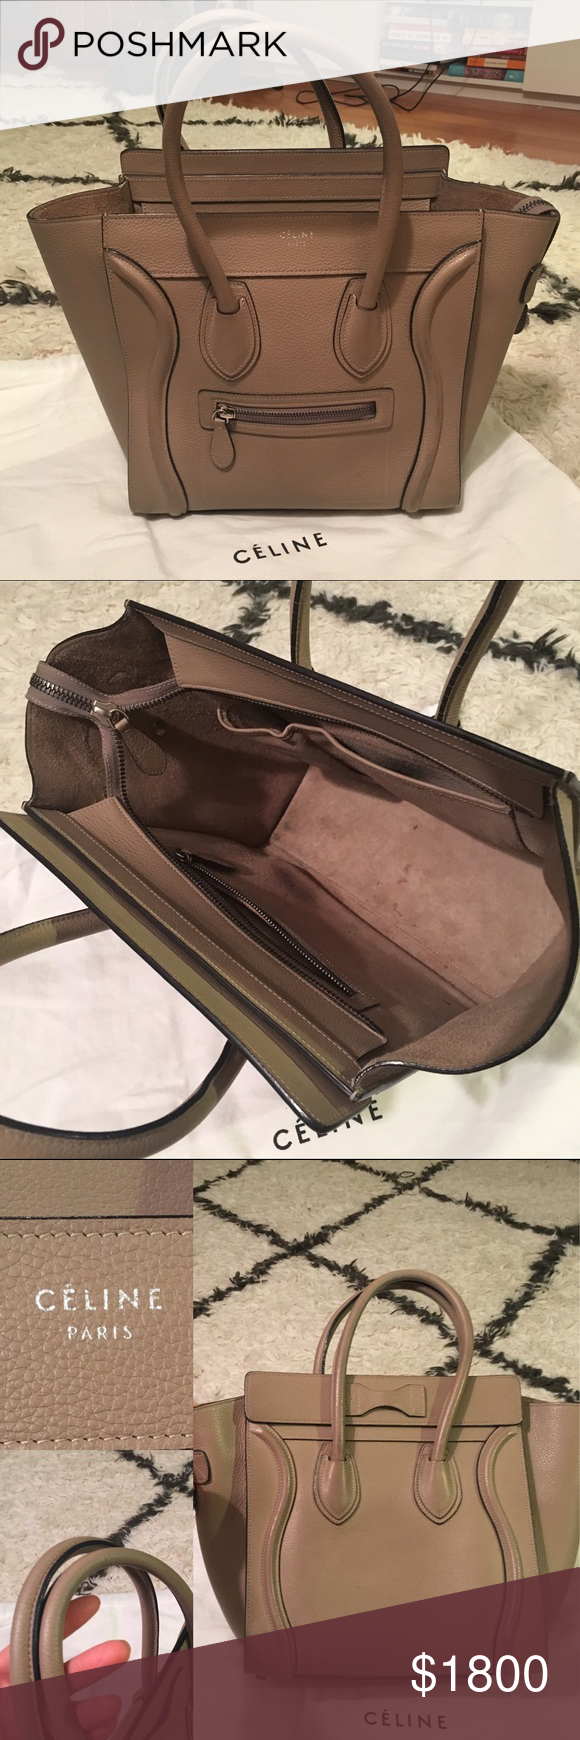 💯Celine Micro Dune Authentic TRUSTED SELLER. Authentic. Gently used w/ minor signs of darkening at bottom & faintly at the back side as shown. Handles are in great condition with very faint darkening on the top side and darker on the underside (not visible when carried unless you turn it upside down). Comes only with dust bag, can't find cards. Extremely light wear at corners. Happy to post more pics, just ask! Retail $3400 + tax ($3714 @ 9.25%) Celine Bags